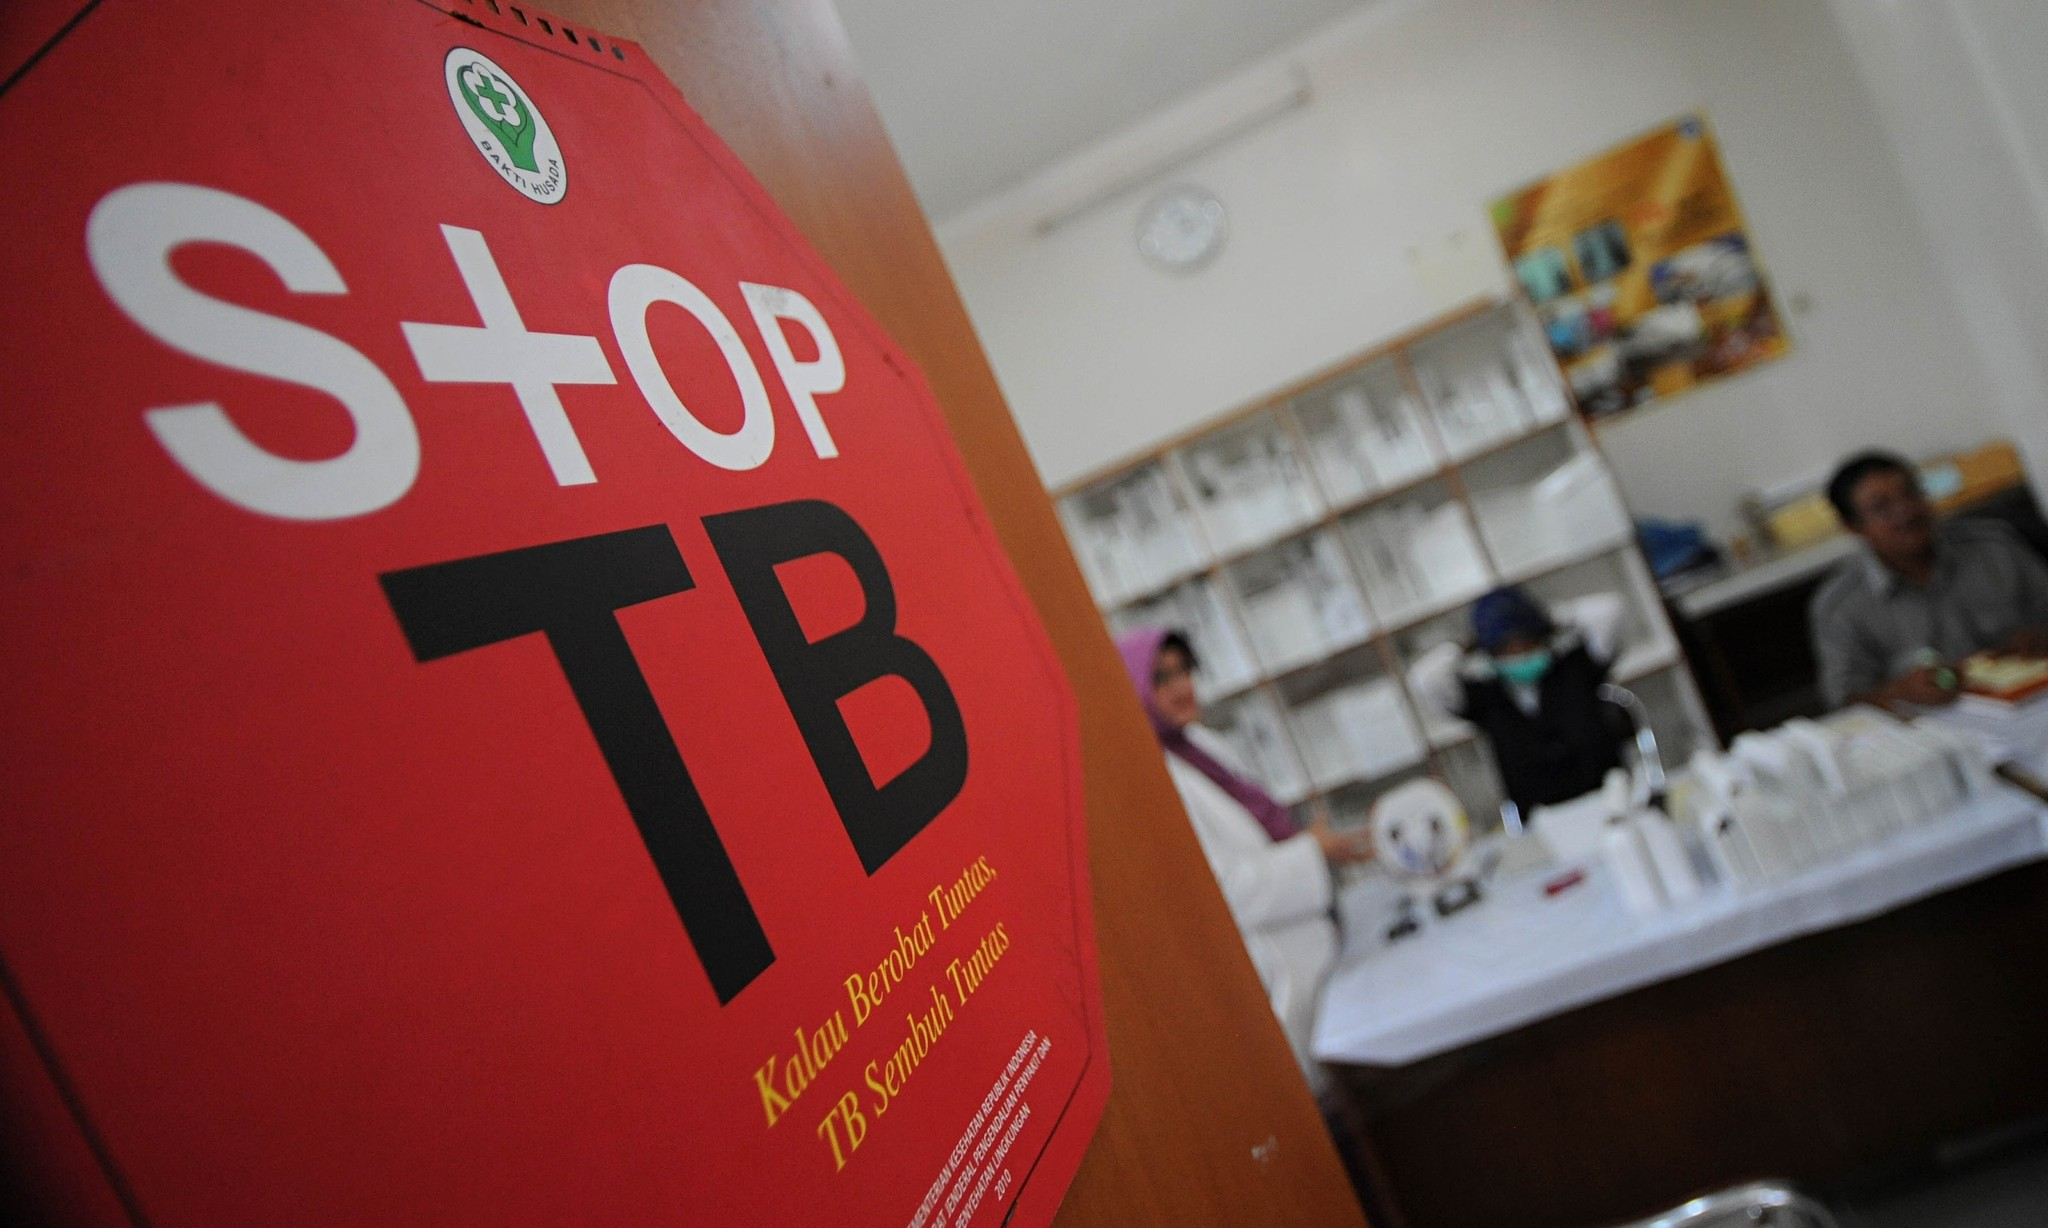 Drug-resistant tuberculosis poses global threat, warn doctors